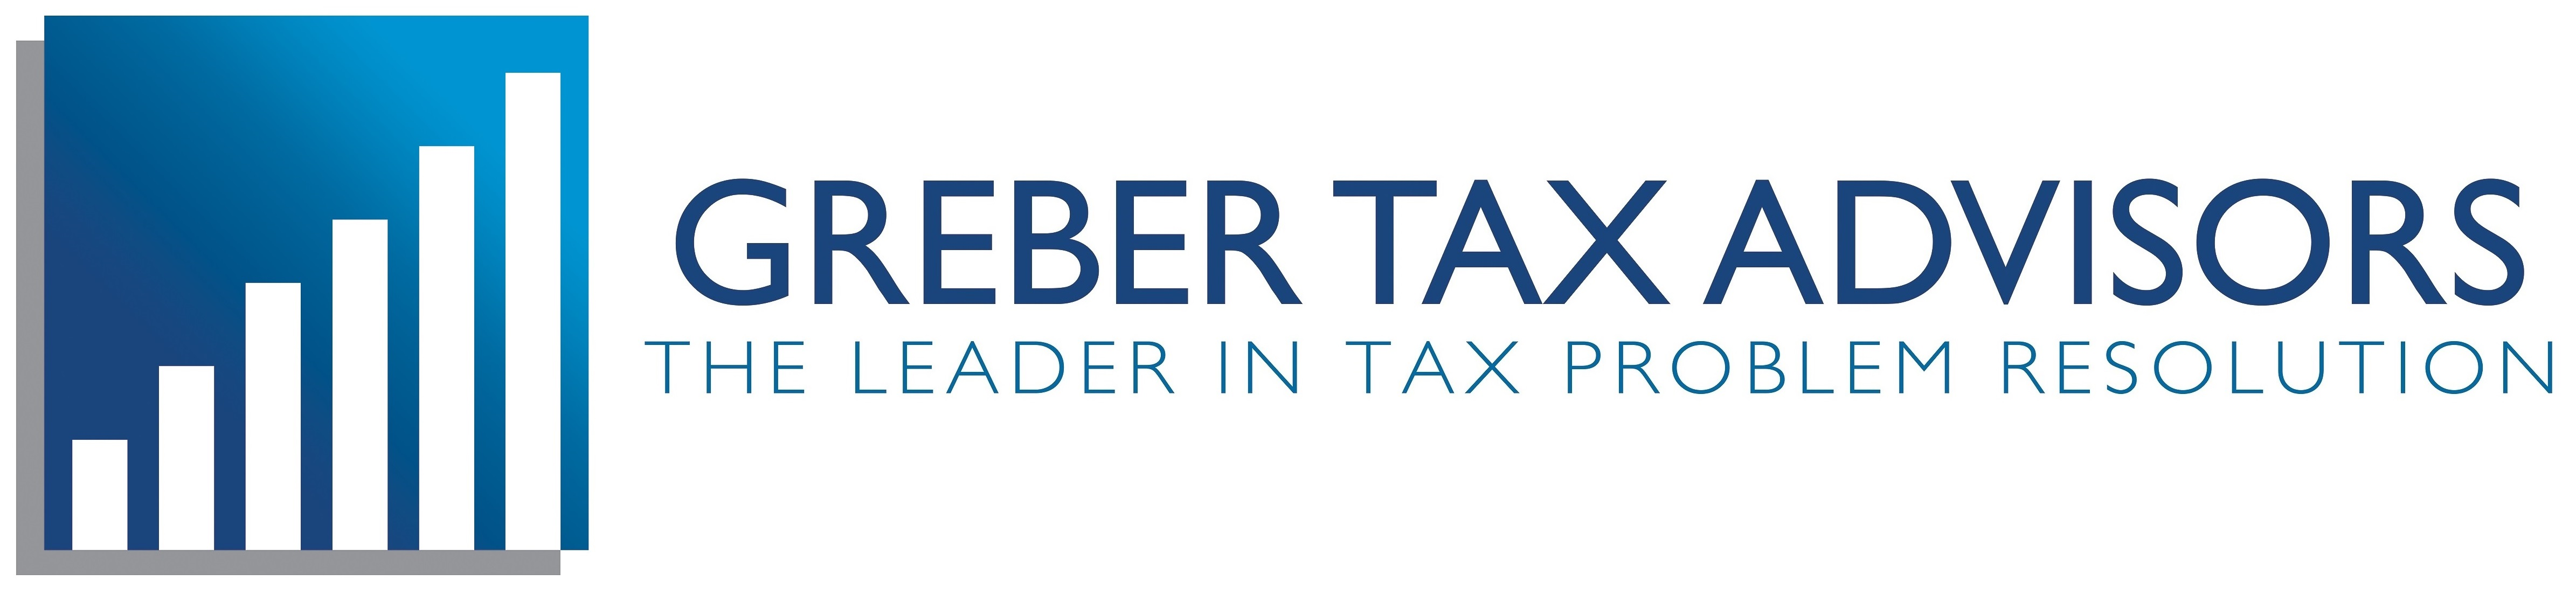 Greber Tax Advisors